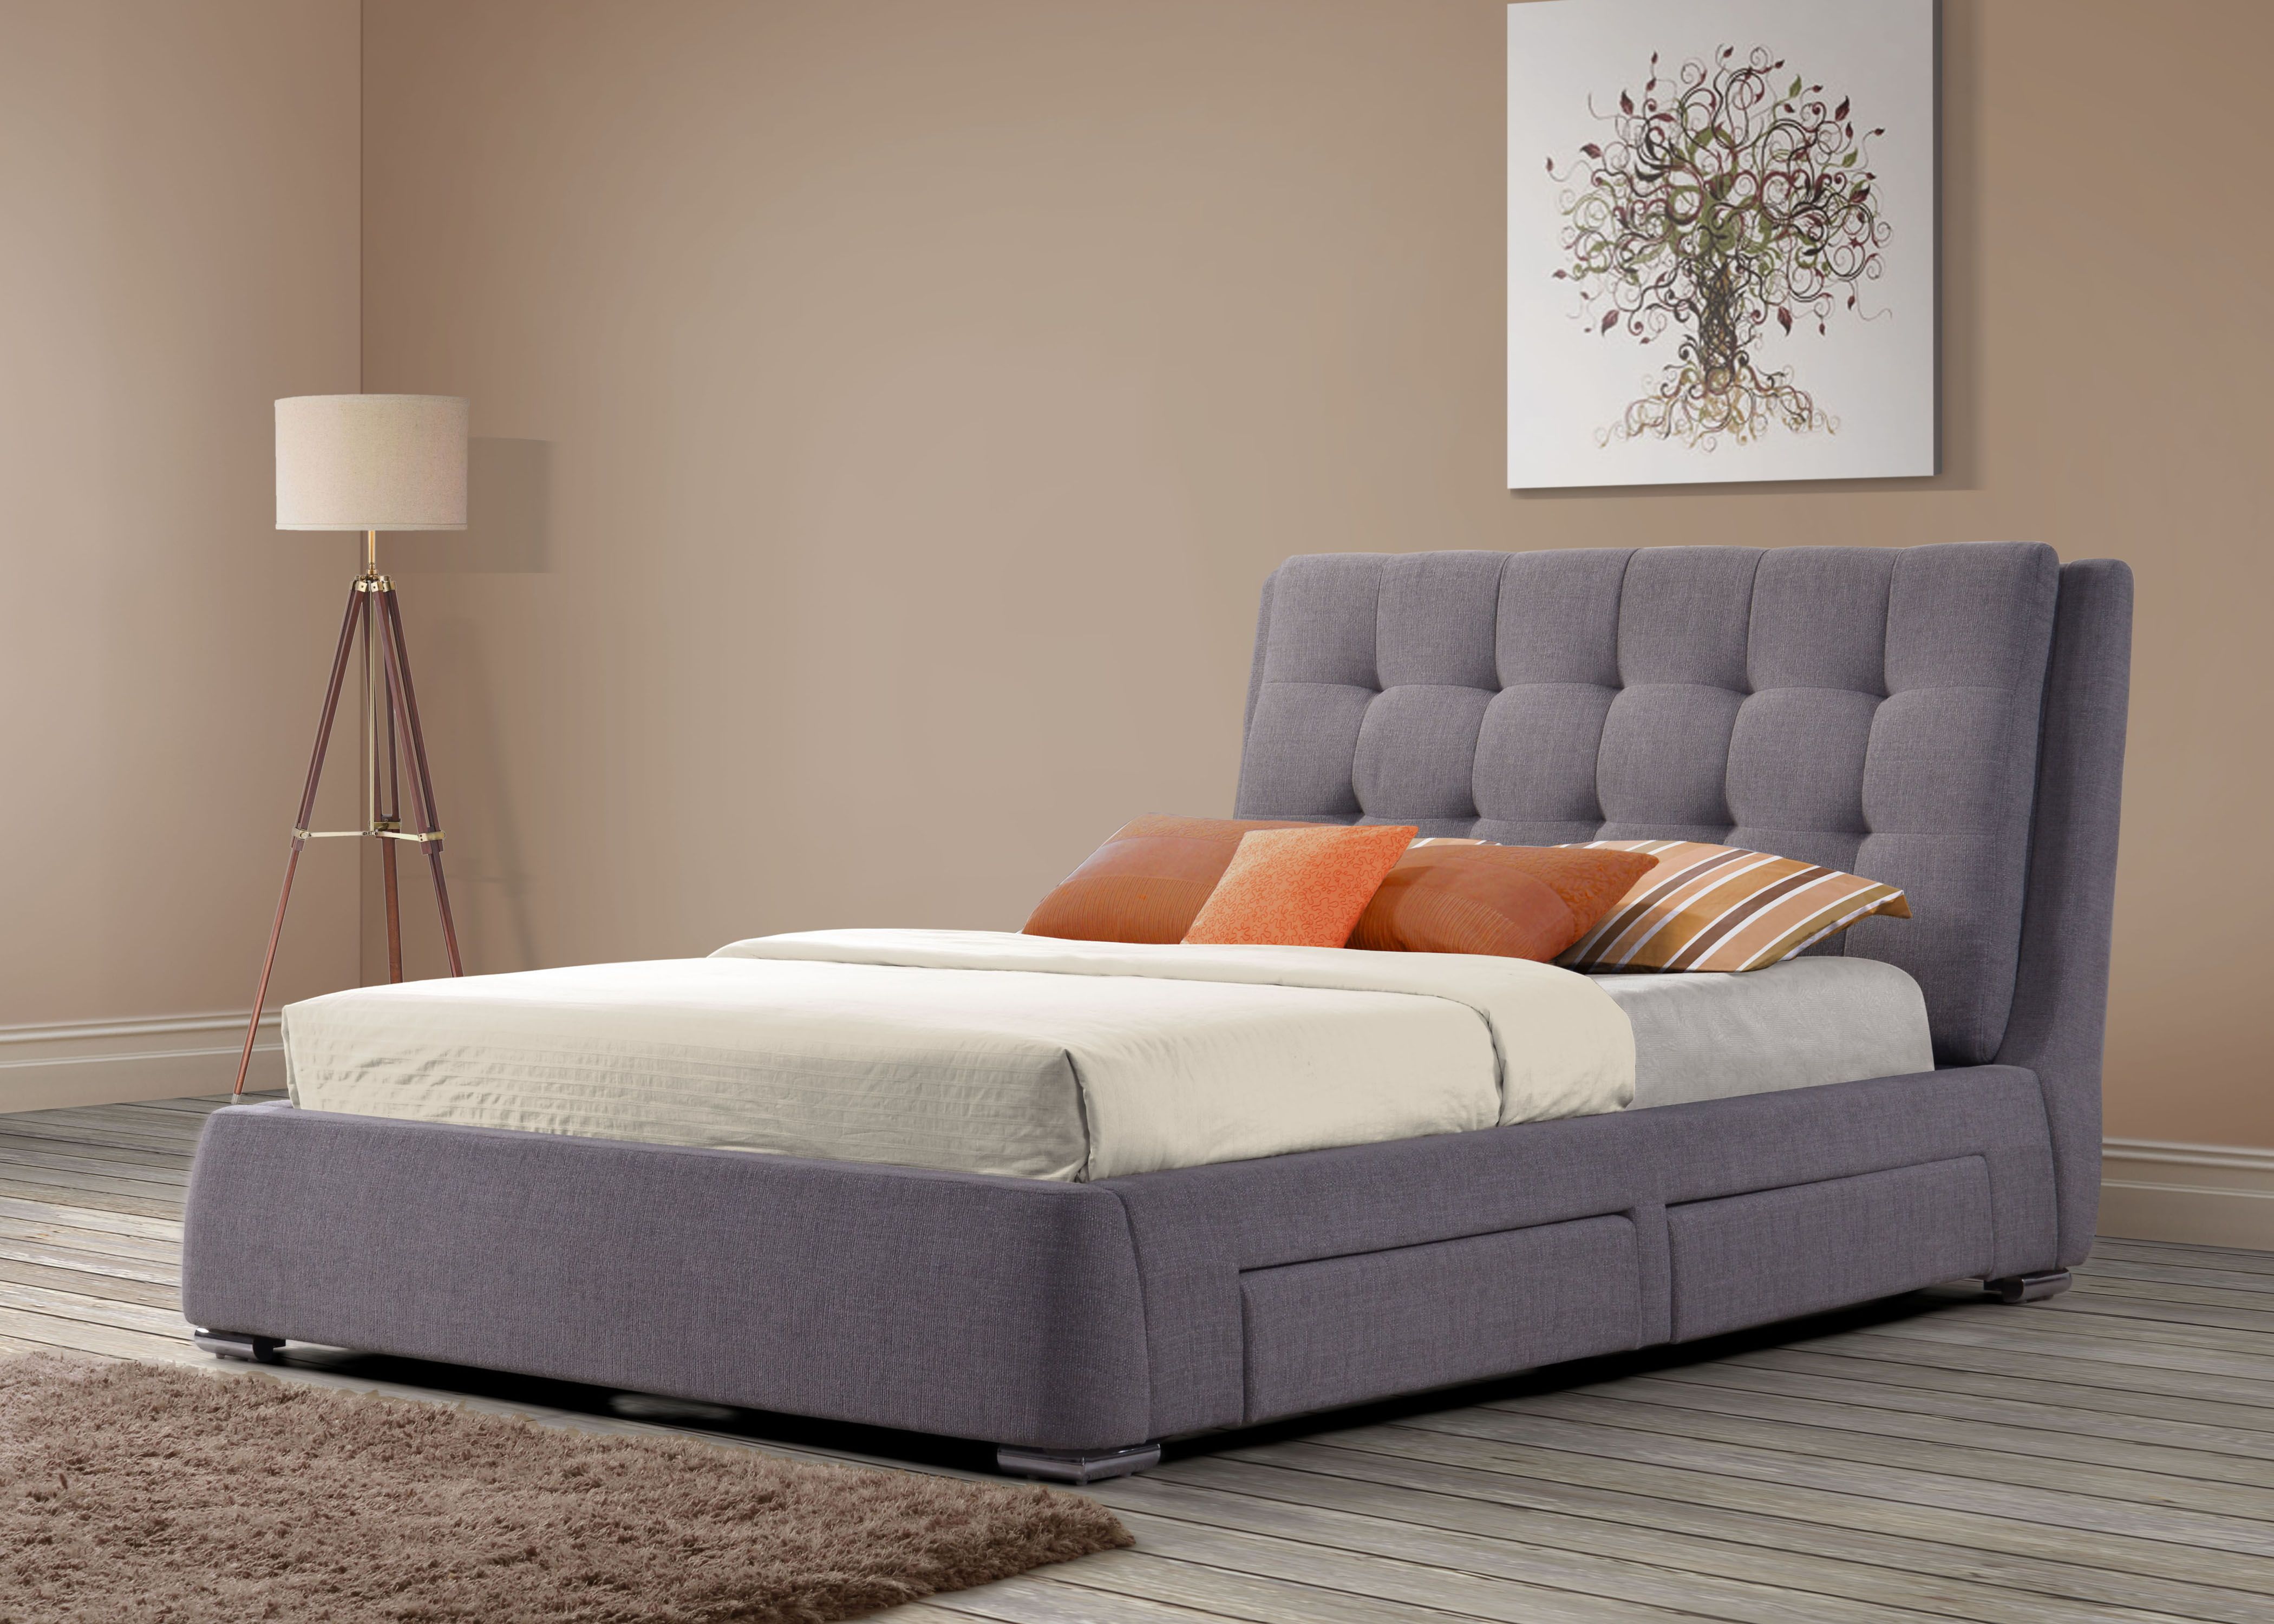 Mayfair 4 drawer bed grey covered in textured grey for Divan bed frame with drawers